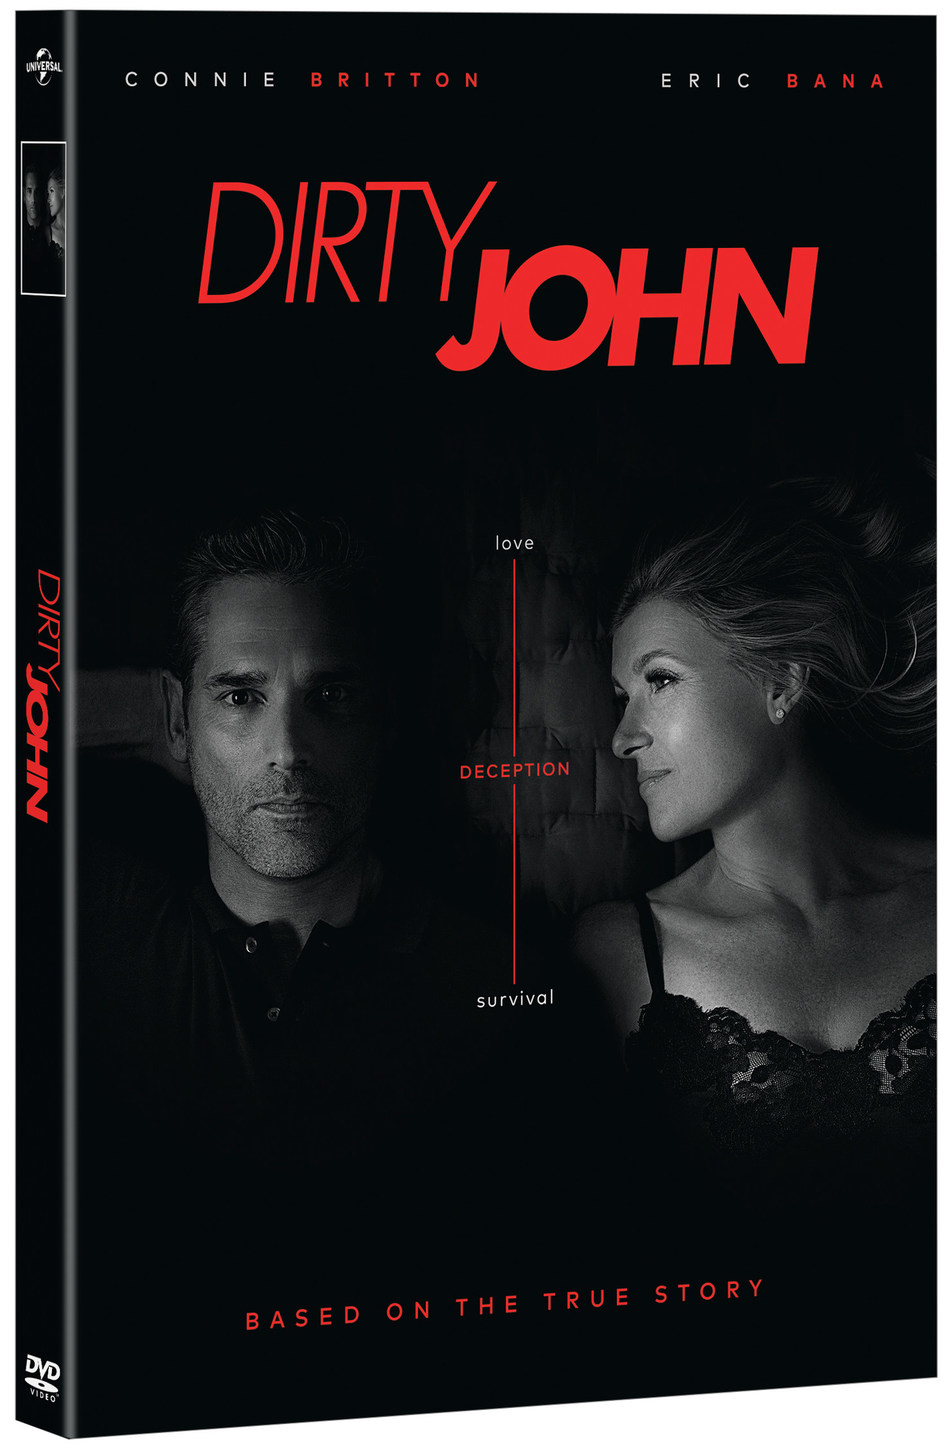 FROM UNIVERSAL PICTURES HOME ENTERTAINMENT: DIRTY JOHN